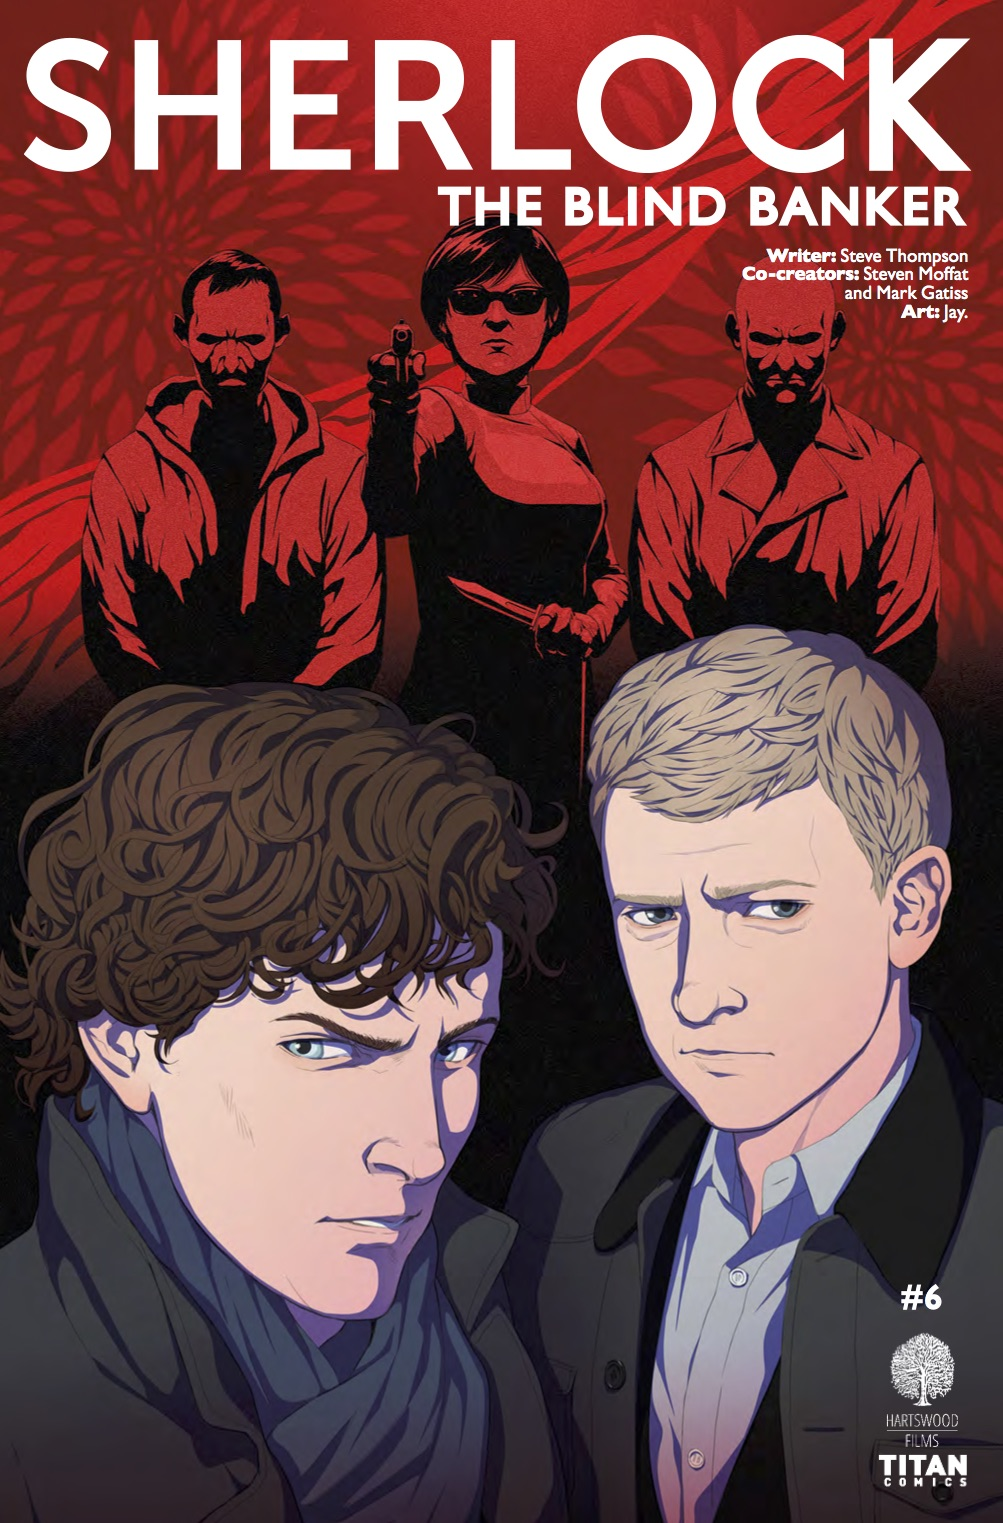 SHERLOCK: THE BLIND BANKER #6COVER A COVER A BY DOUBLELEAF